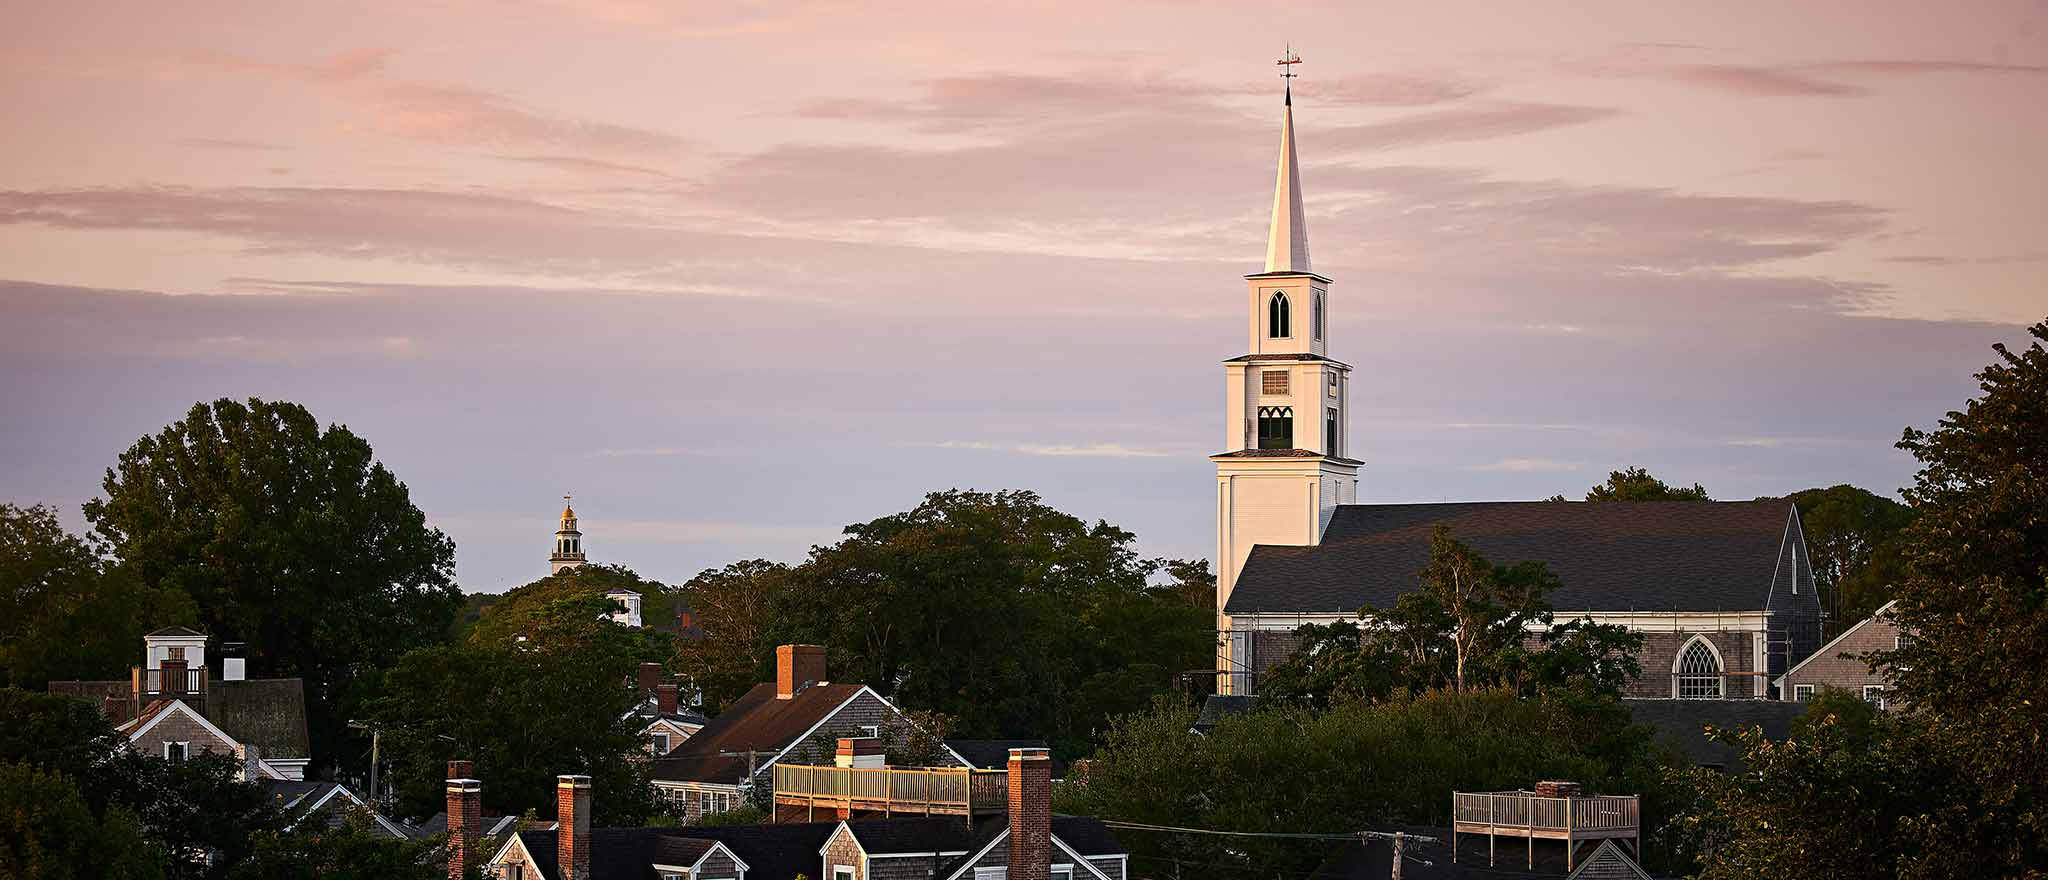 Church on Cliff Road in Nantucket